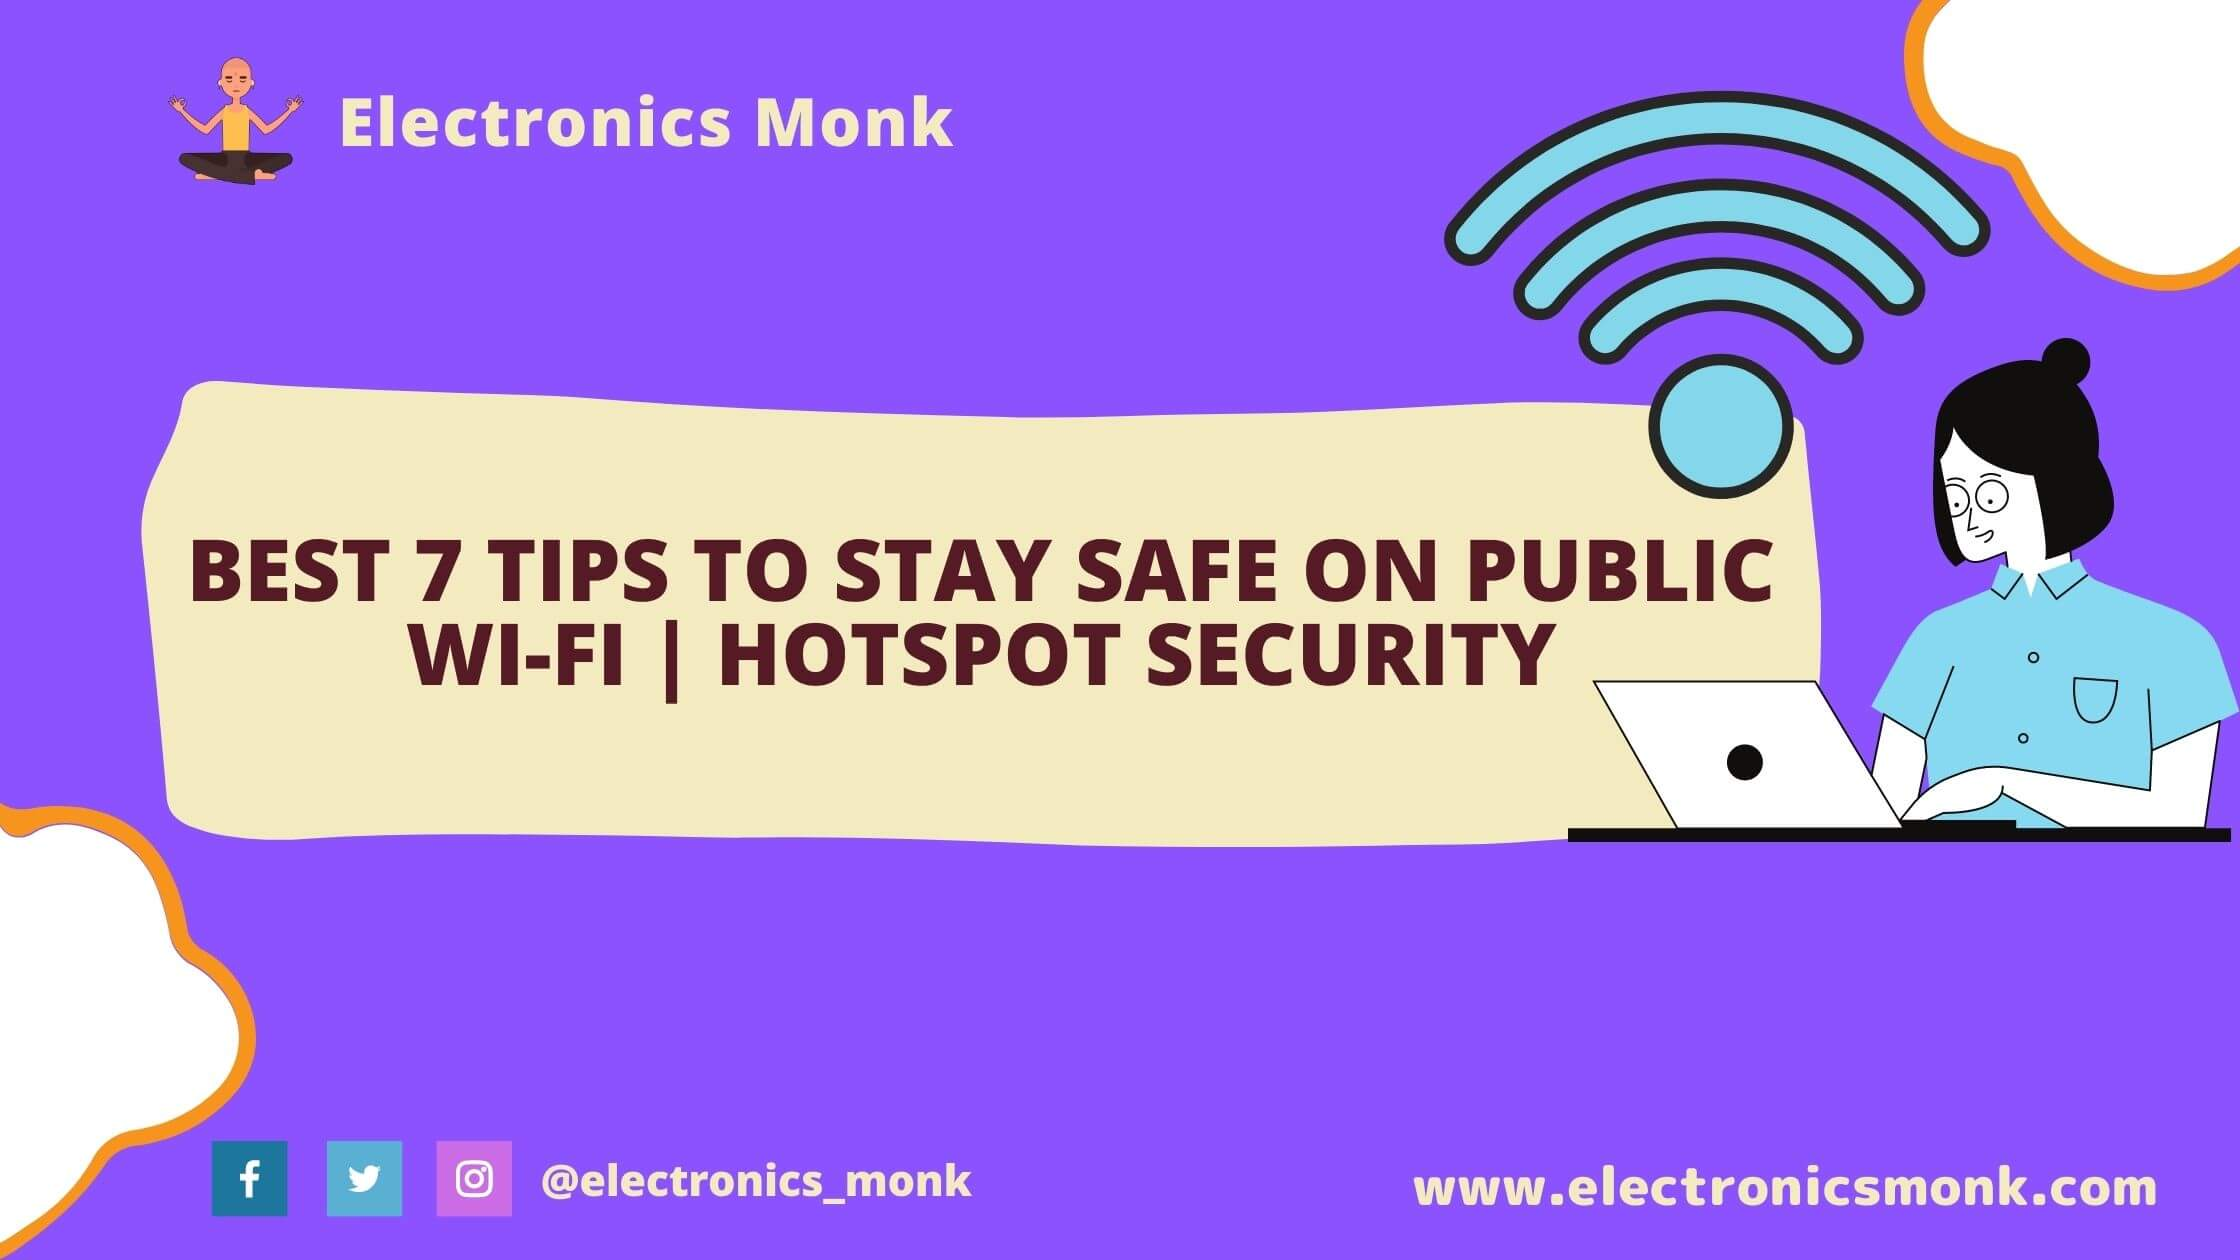 Best 7 Tips to Stay Safe on Public Wi-Fi| Hotspot Security